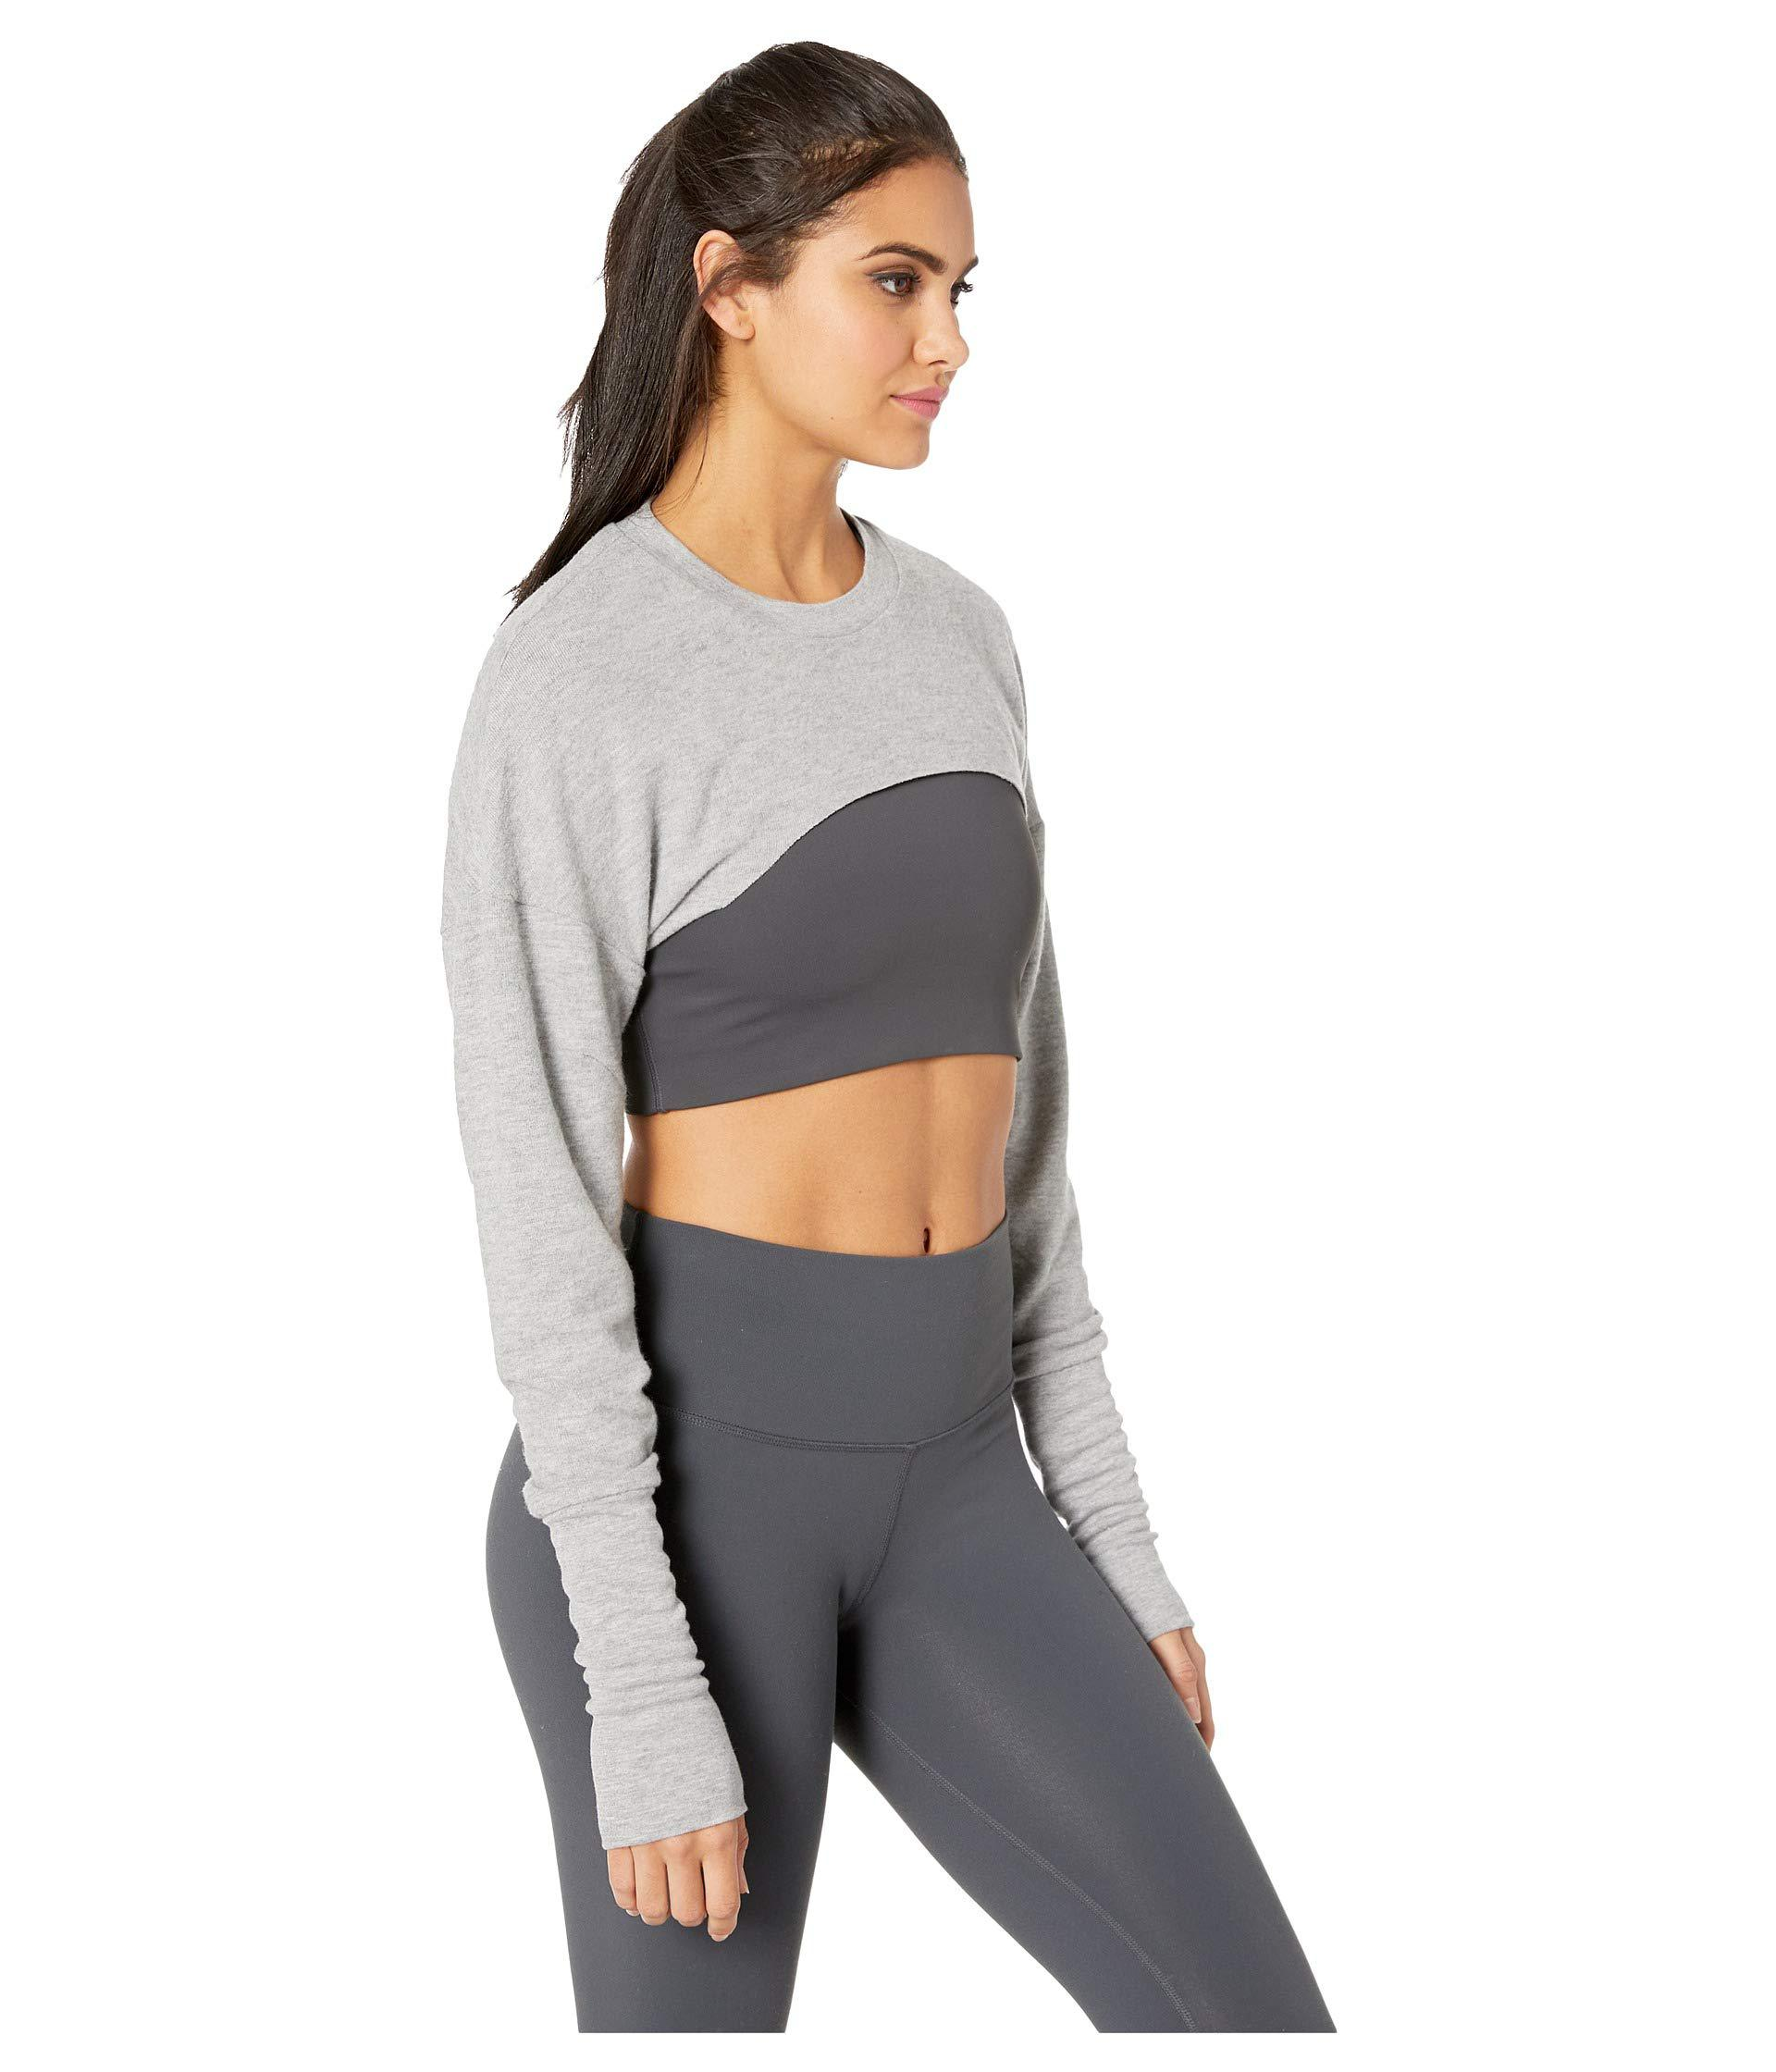 6ec5f0566f0 Alo Yoga Extreme Long Sleeve Top (pristine) Women's Clothing in Gray ...